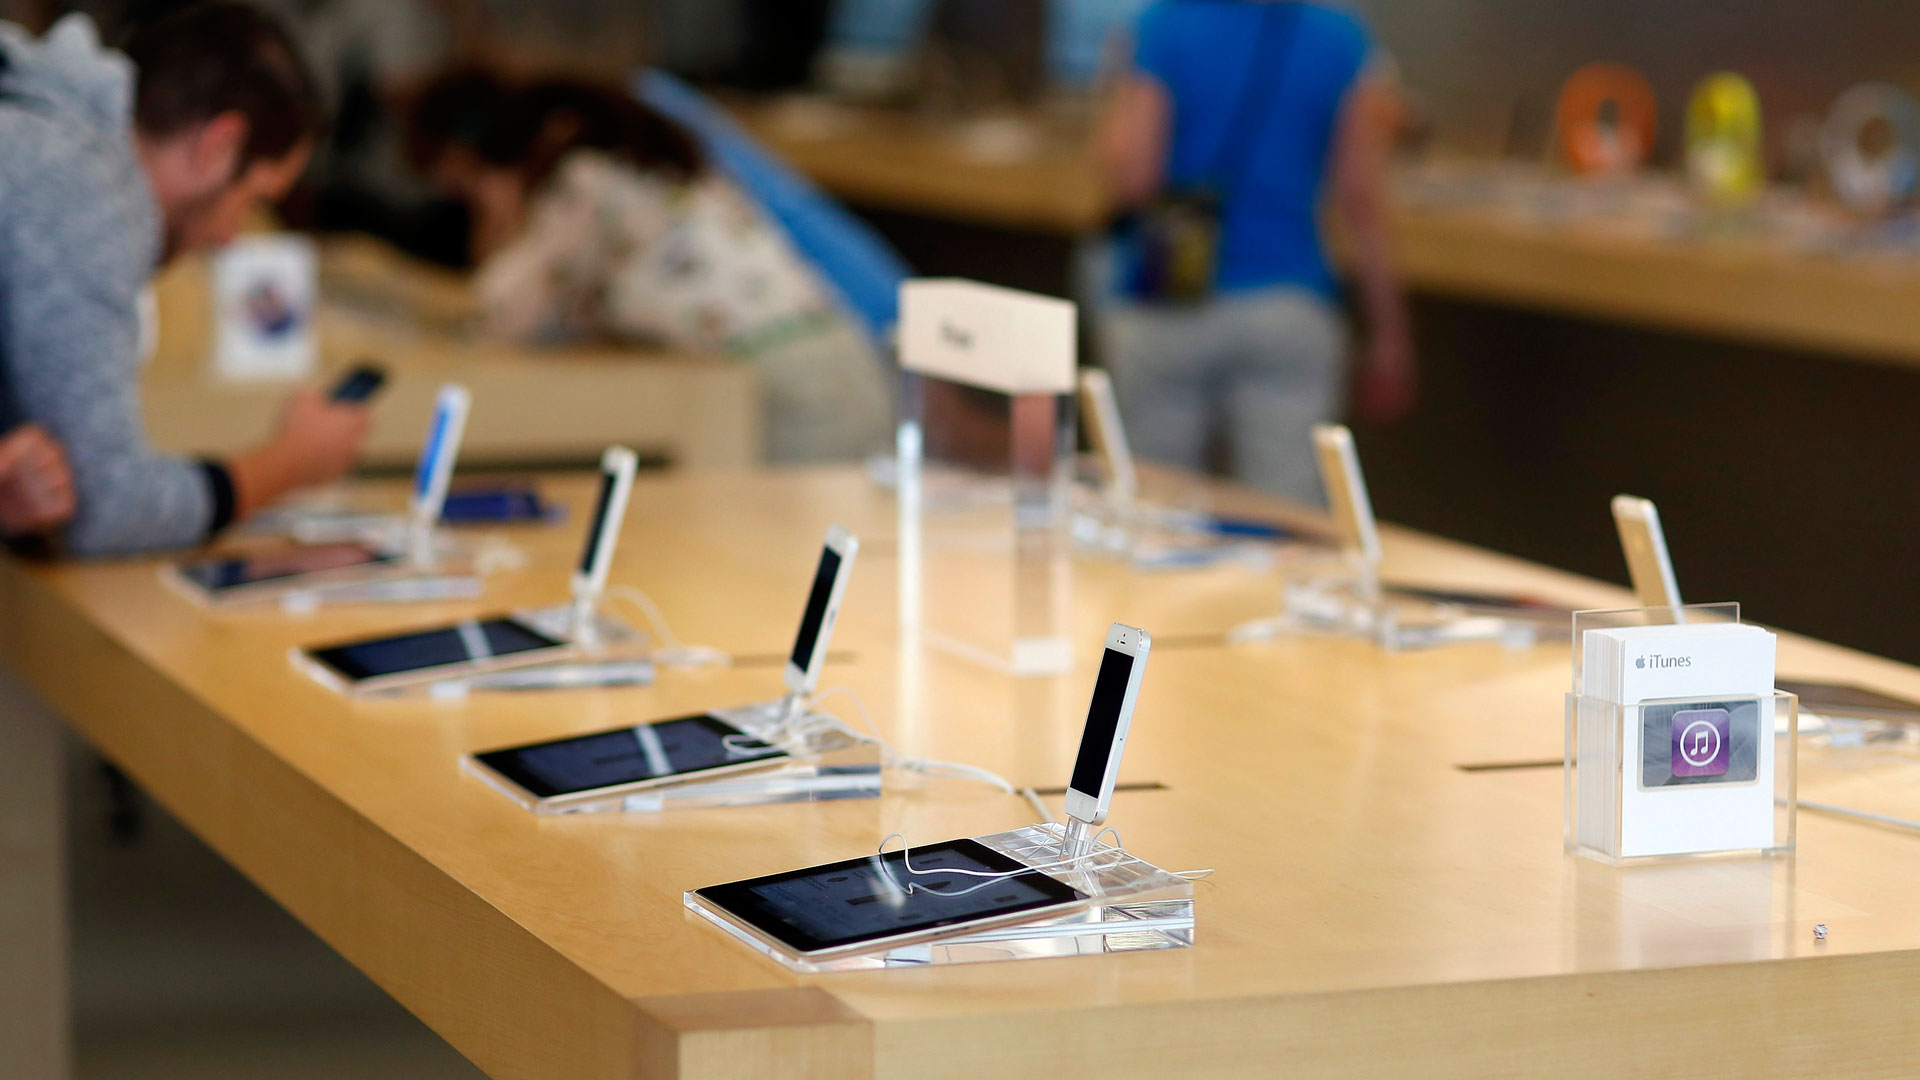 Apple to Open First Stores in UAE After Government Approves?